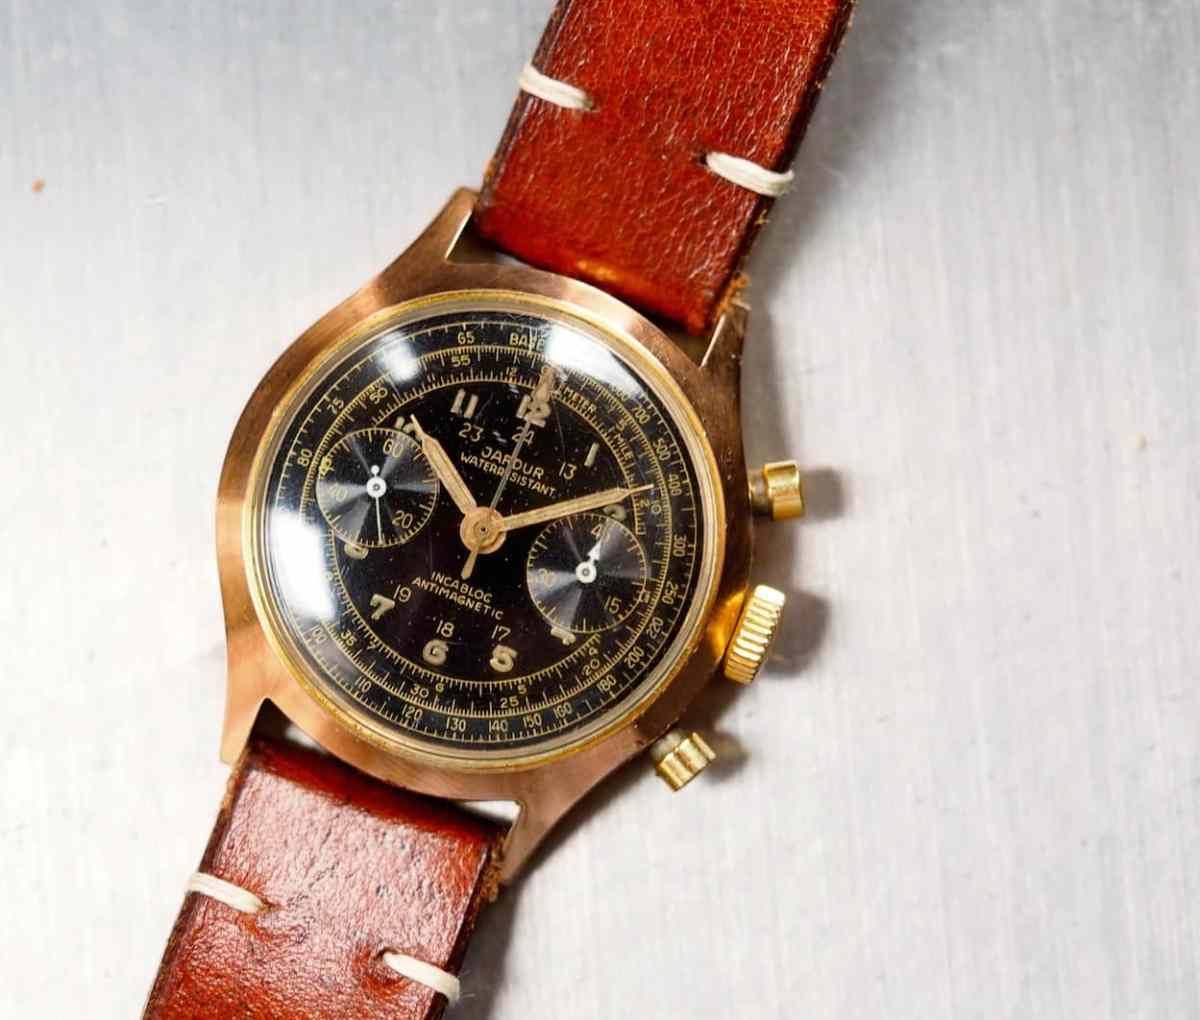 The Jardur 850 is really an attractive chronograph - rose gold plated case and all!